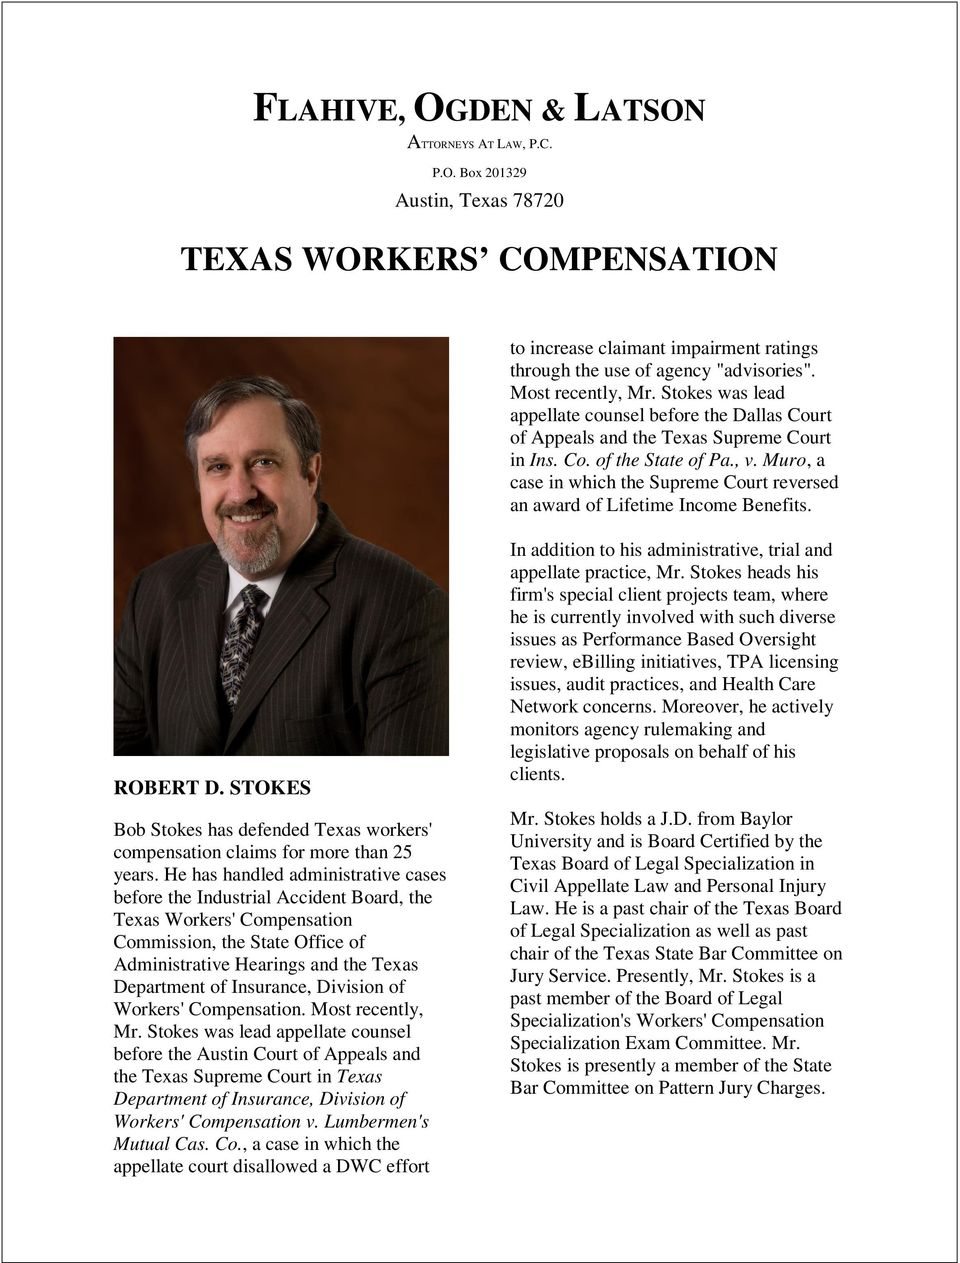 Muro, a case in which the Supreme Court reversed an award of Lifetime Income Benefits. ROBERT D. STOKES Bob Stokes has defended Texas workers' compensation claims for more than 25 years.